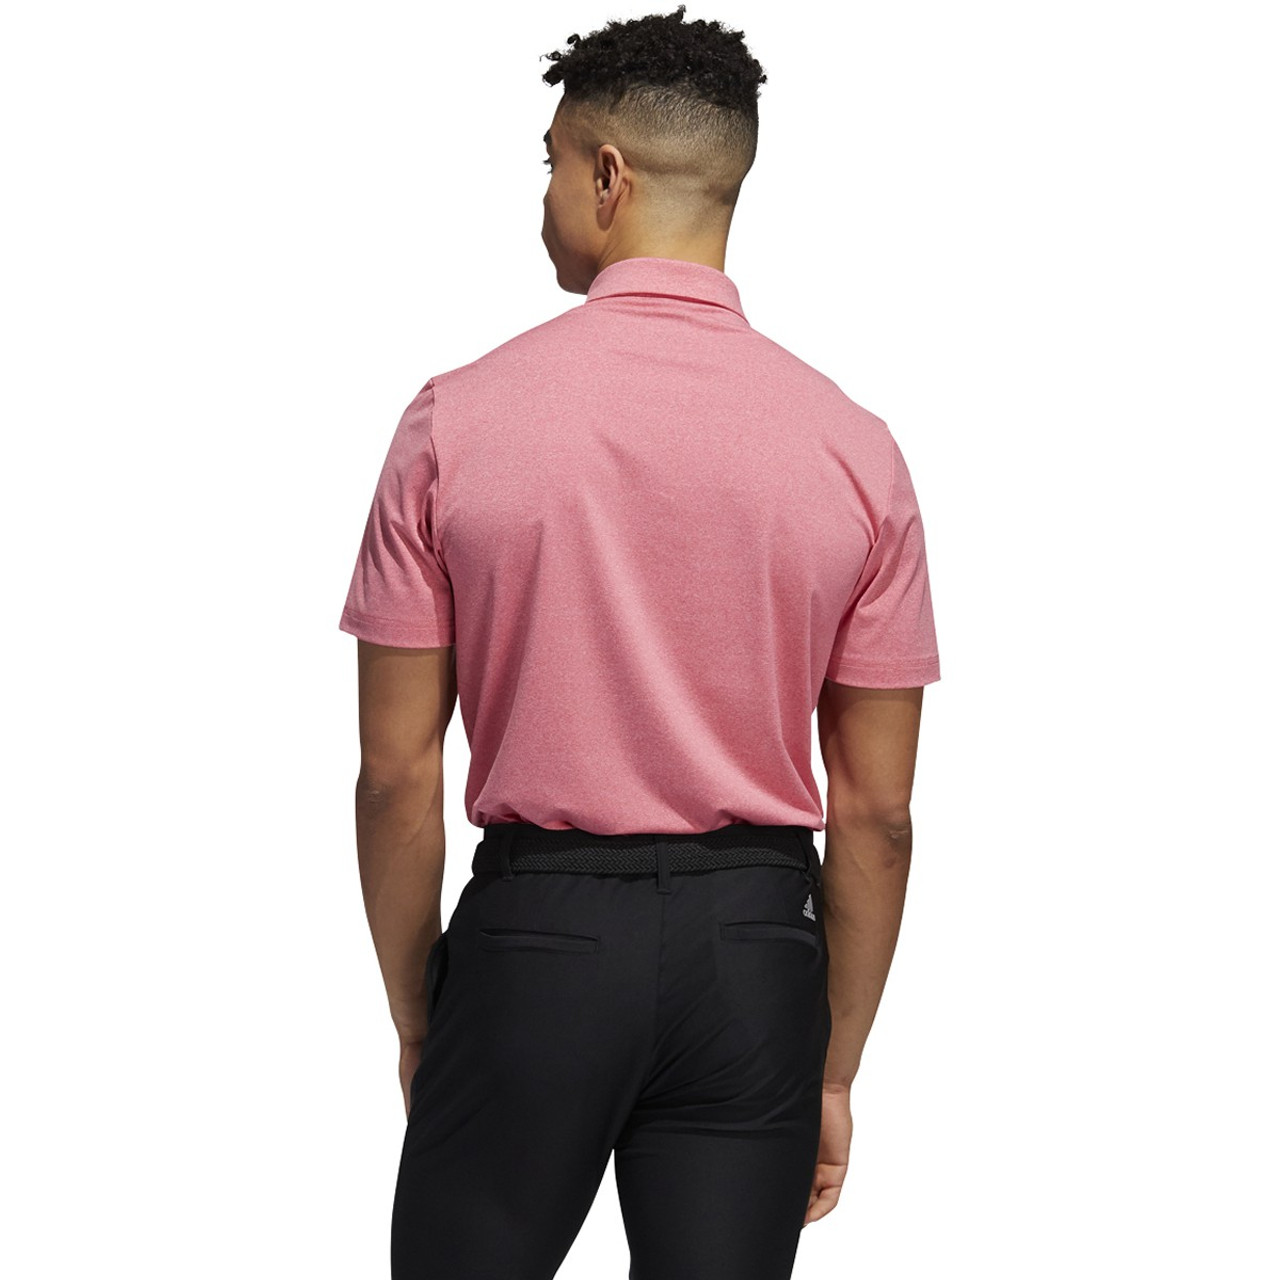 Adidas Ultimate 365 2.0 Heather Polo - Power Pink